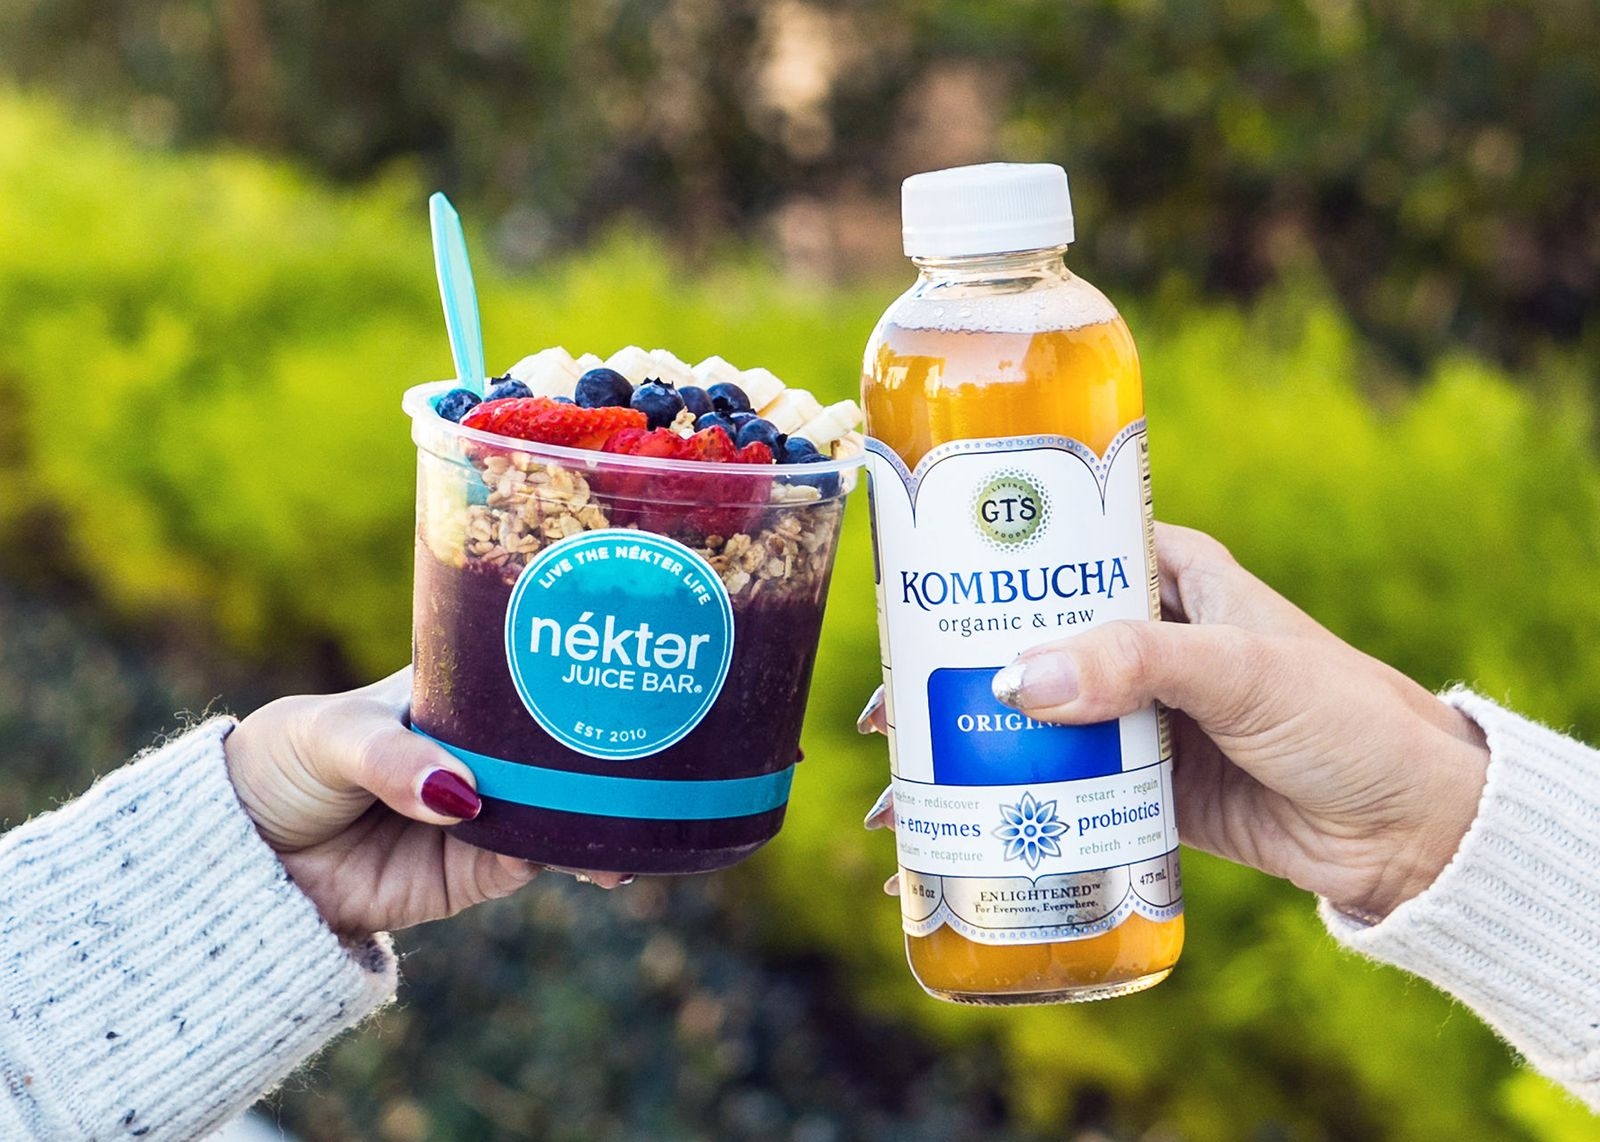 Nékter Juice Bar Partners with GT's Living Foods on New Kombucha Smoothies and Acai Bowls for the New Year